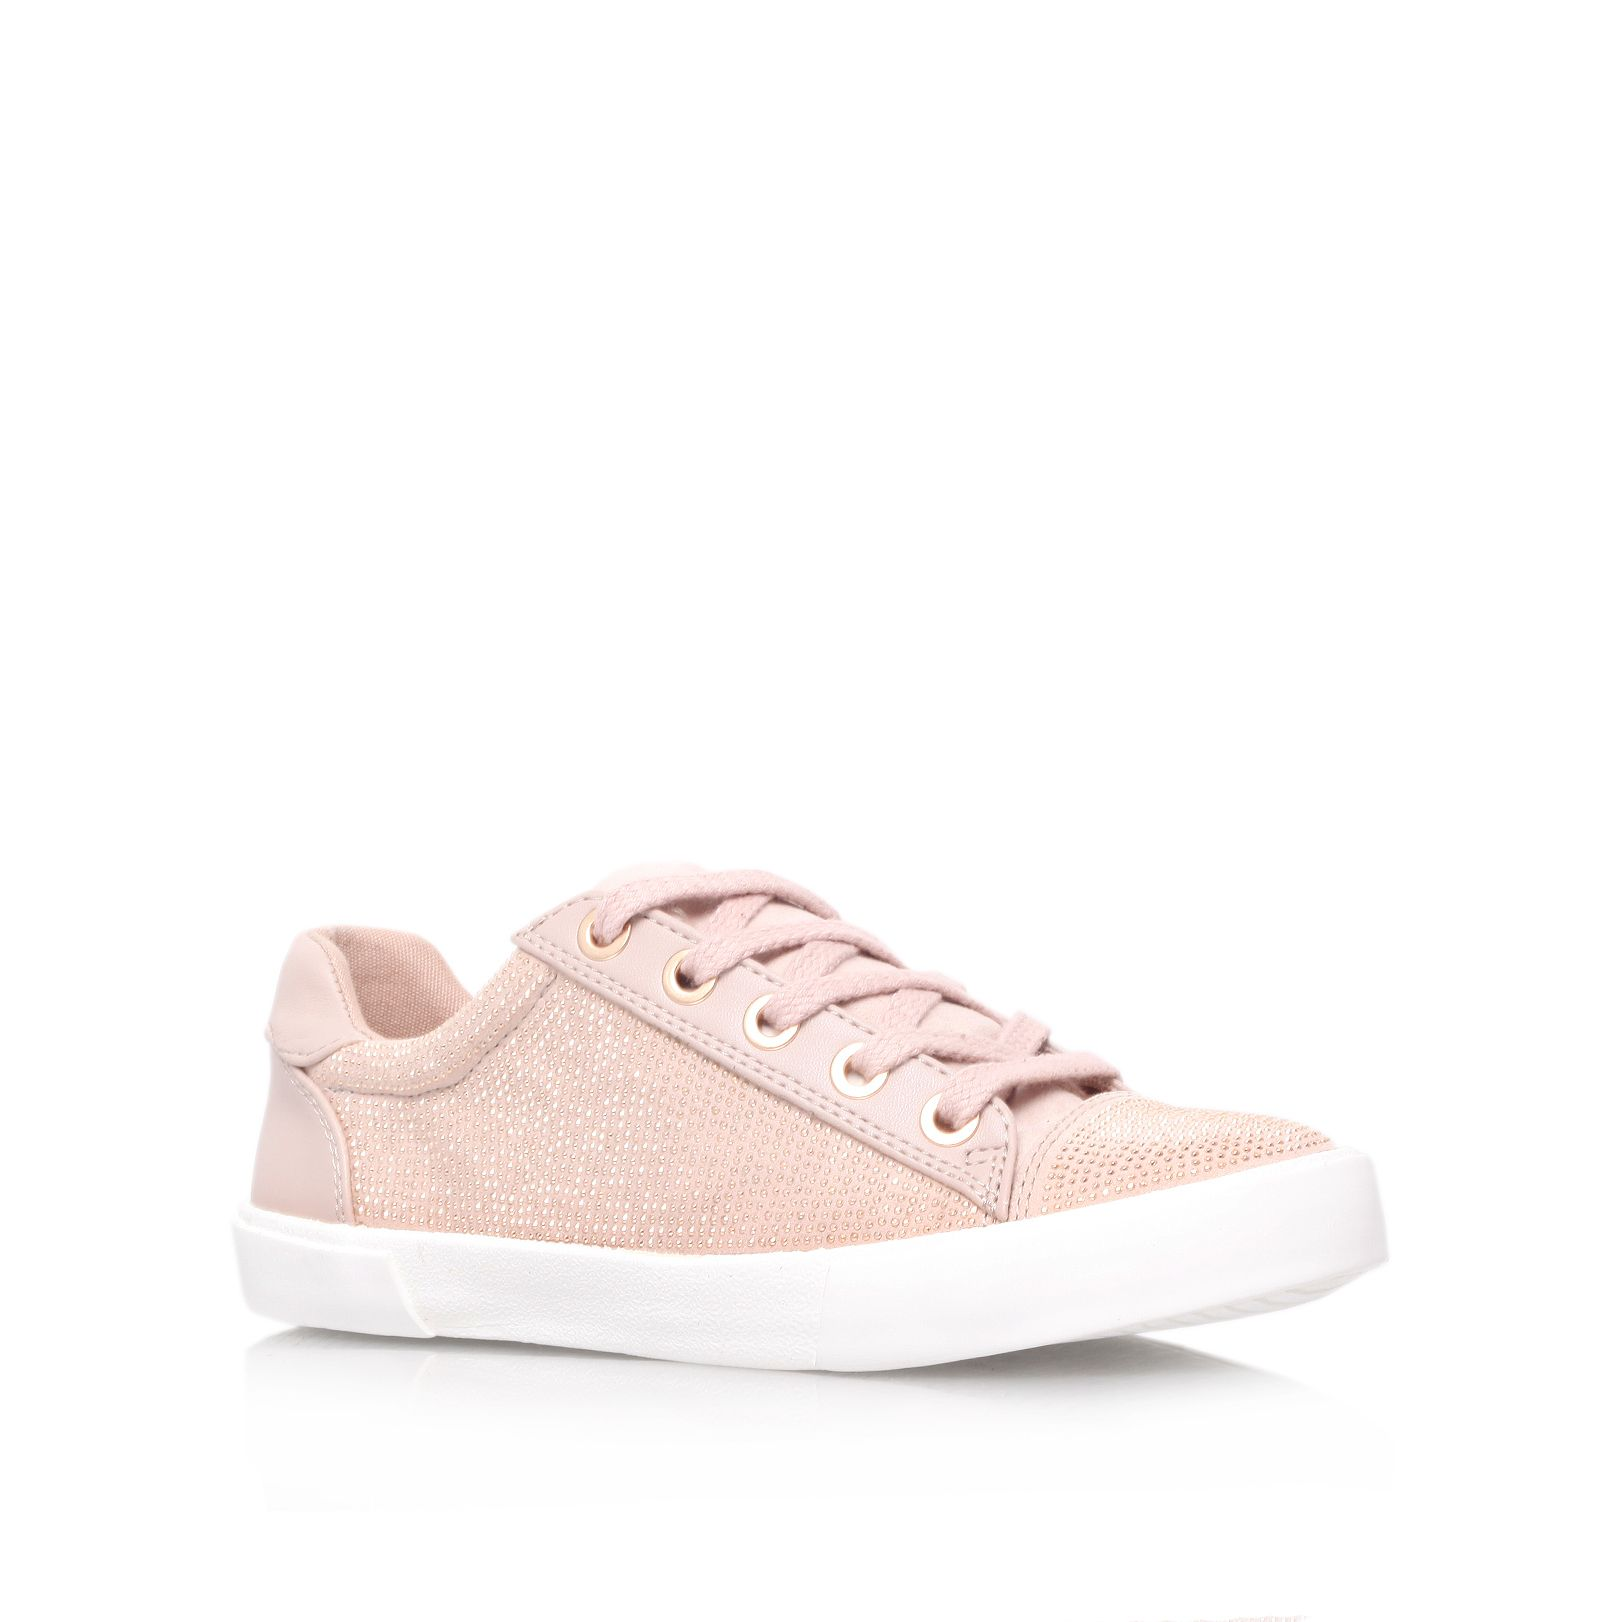 Lock flat low top trainers